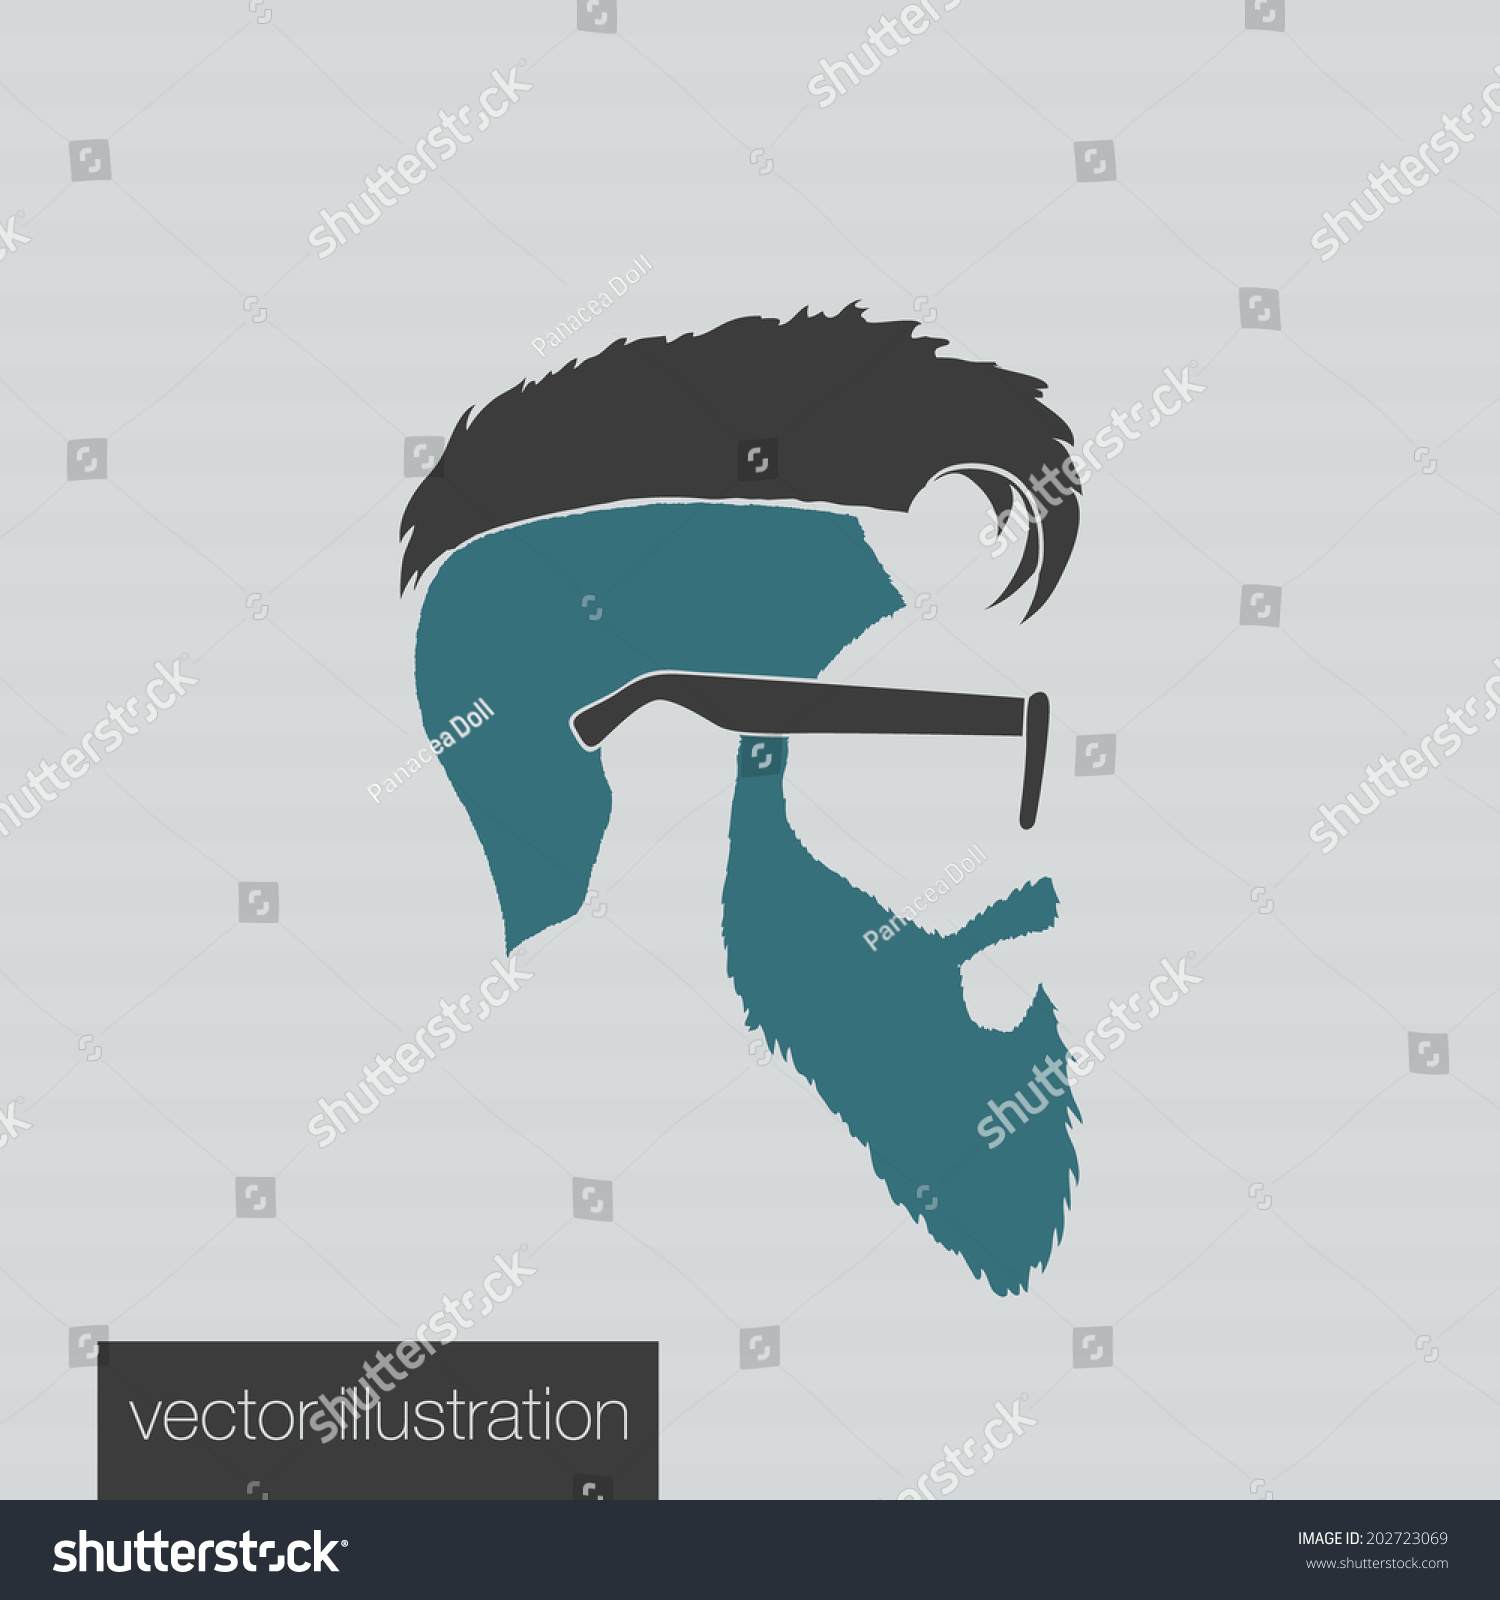 icons hairstyles beard mustache hipster profile stock